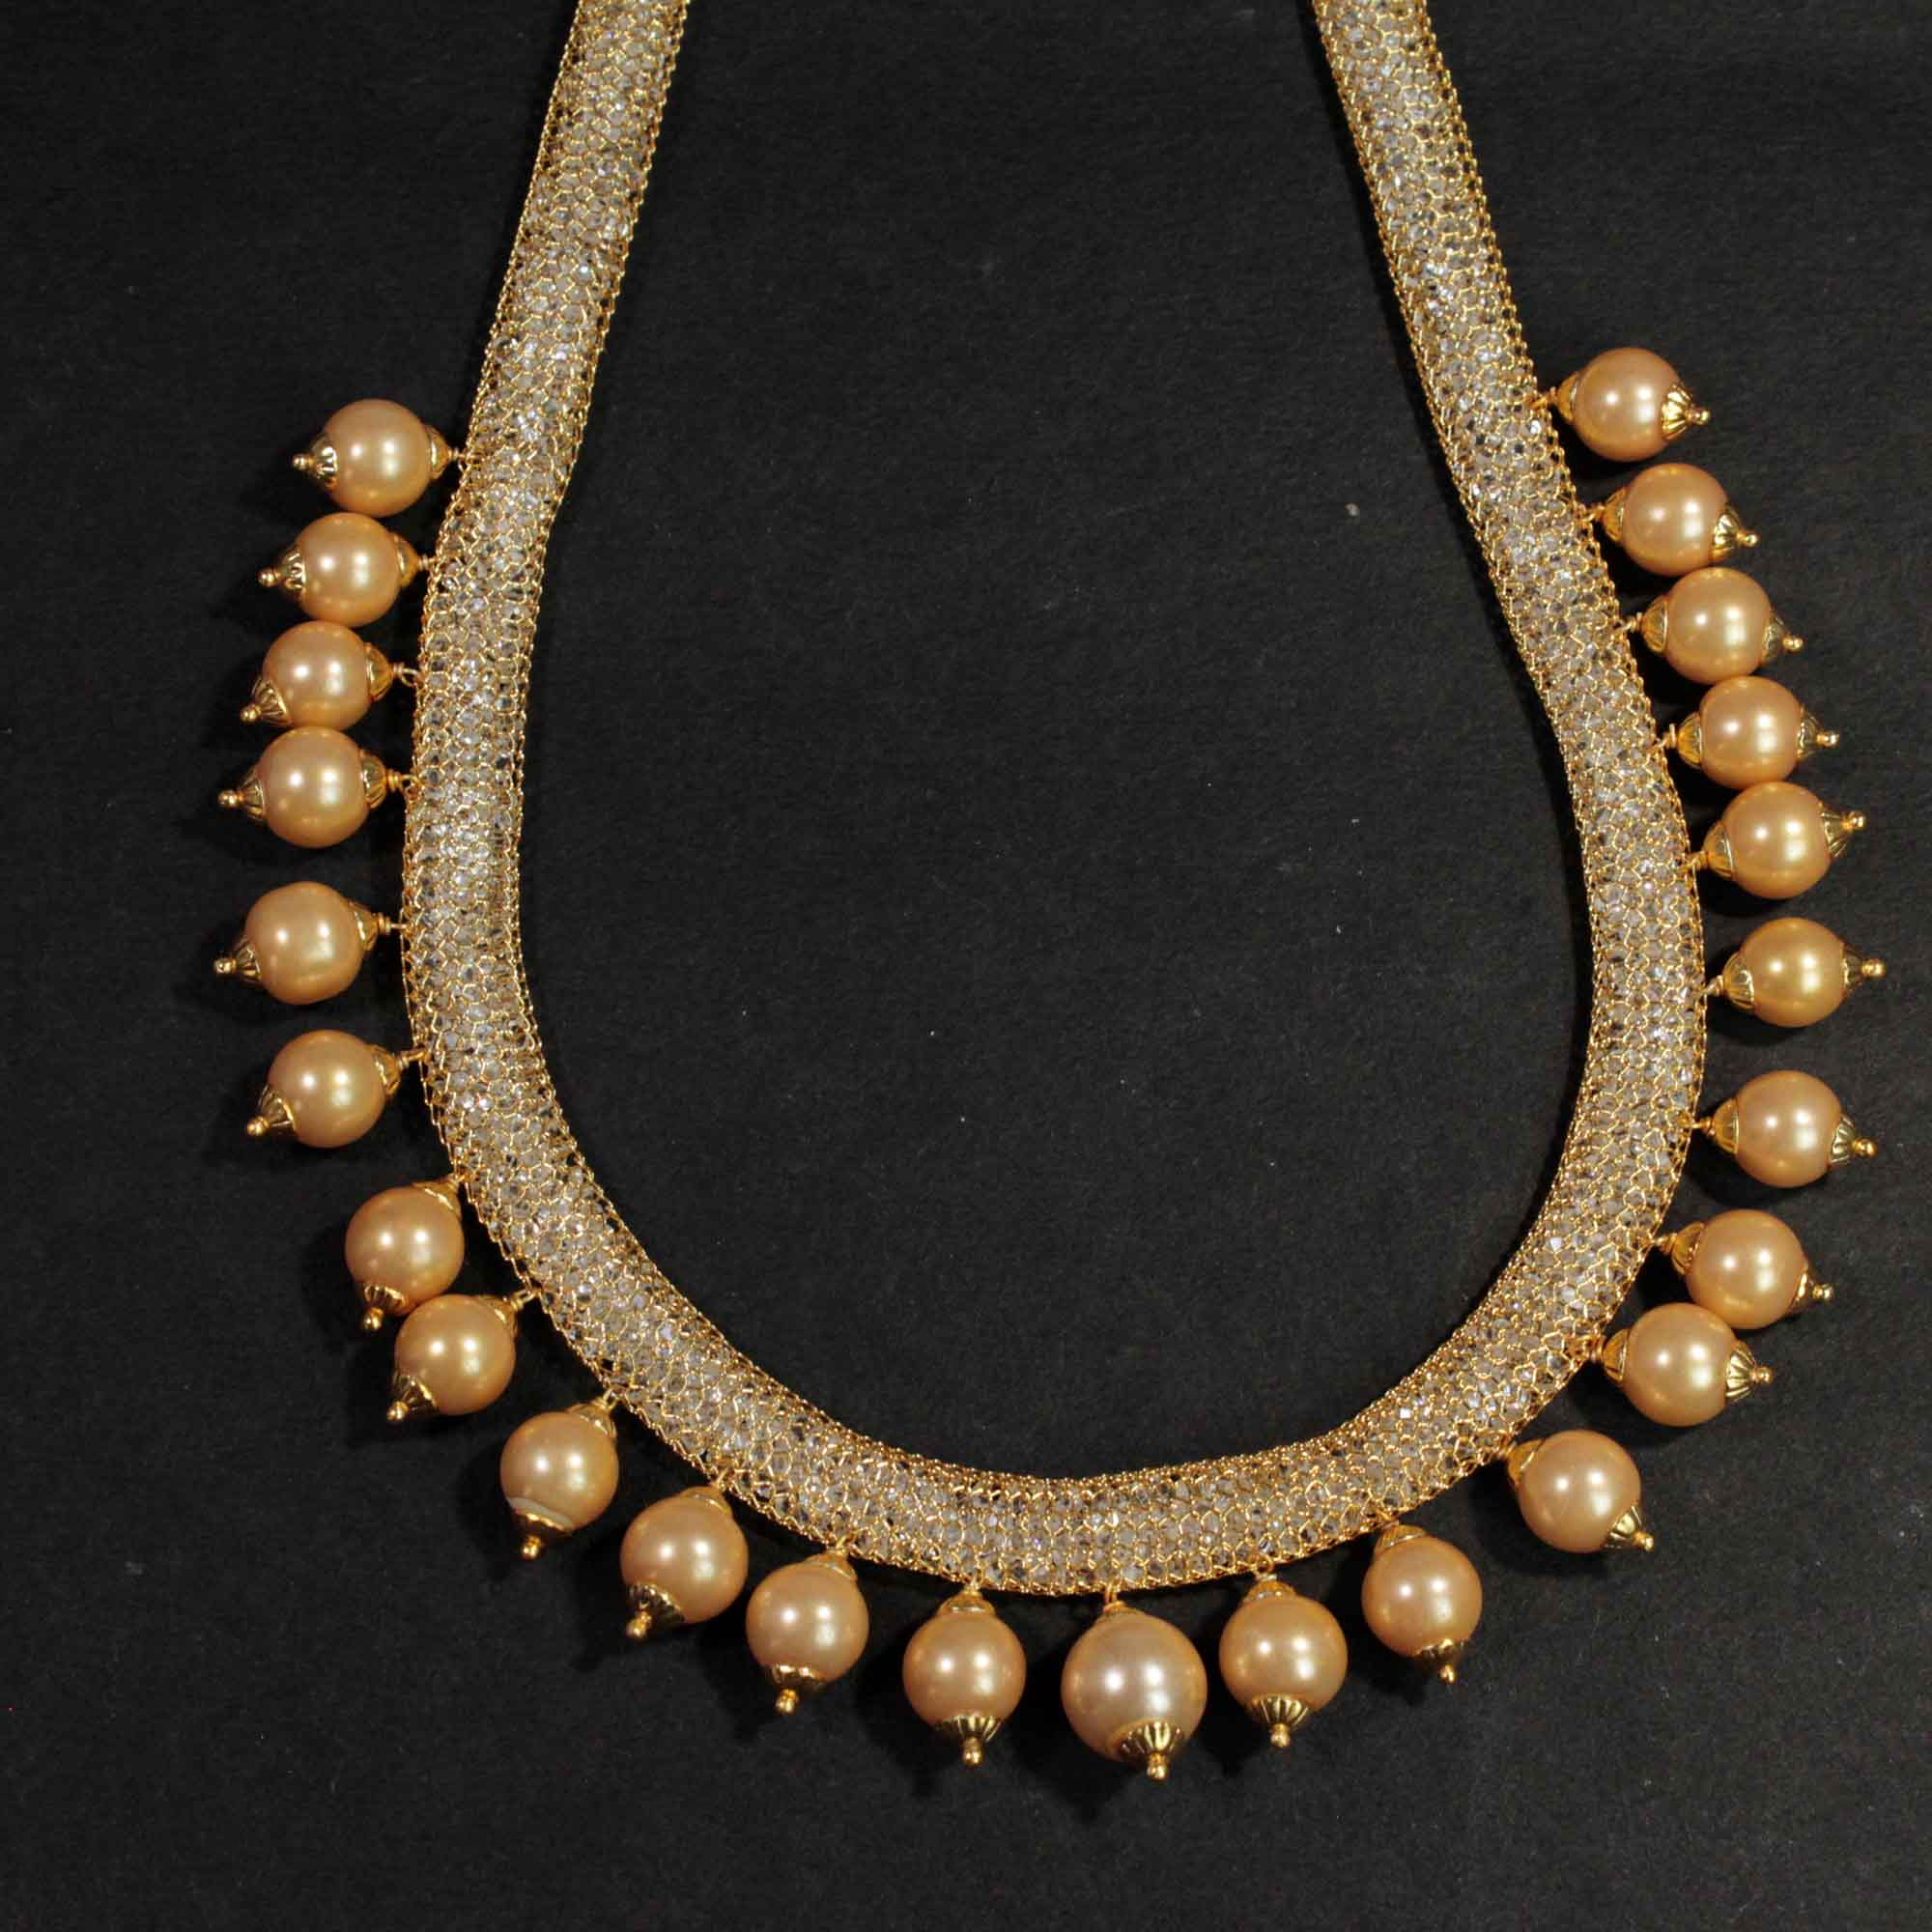 Boho Style Gold Plated Wire Mesh Necklace With Boho Style Gold Beads